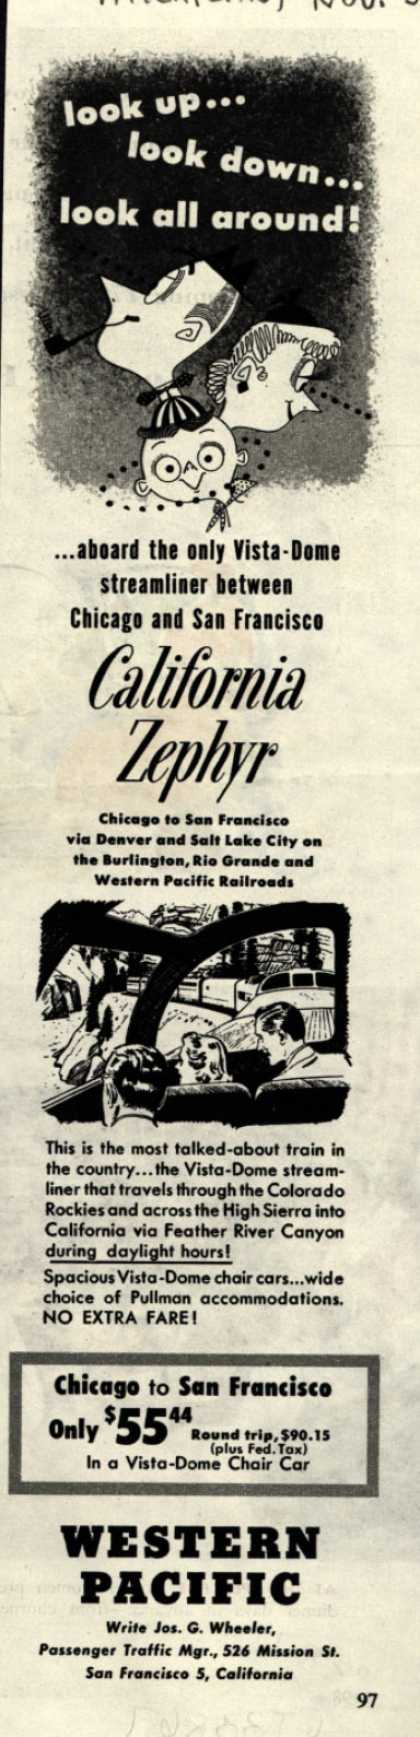 Western Pacific's California Zephyr – look up...look down...look all around (1953)